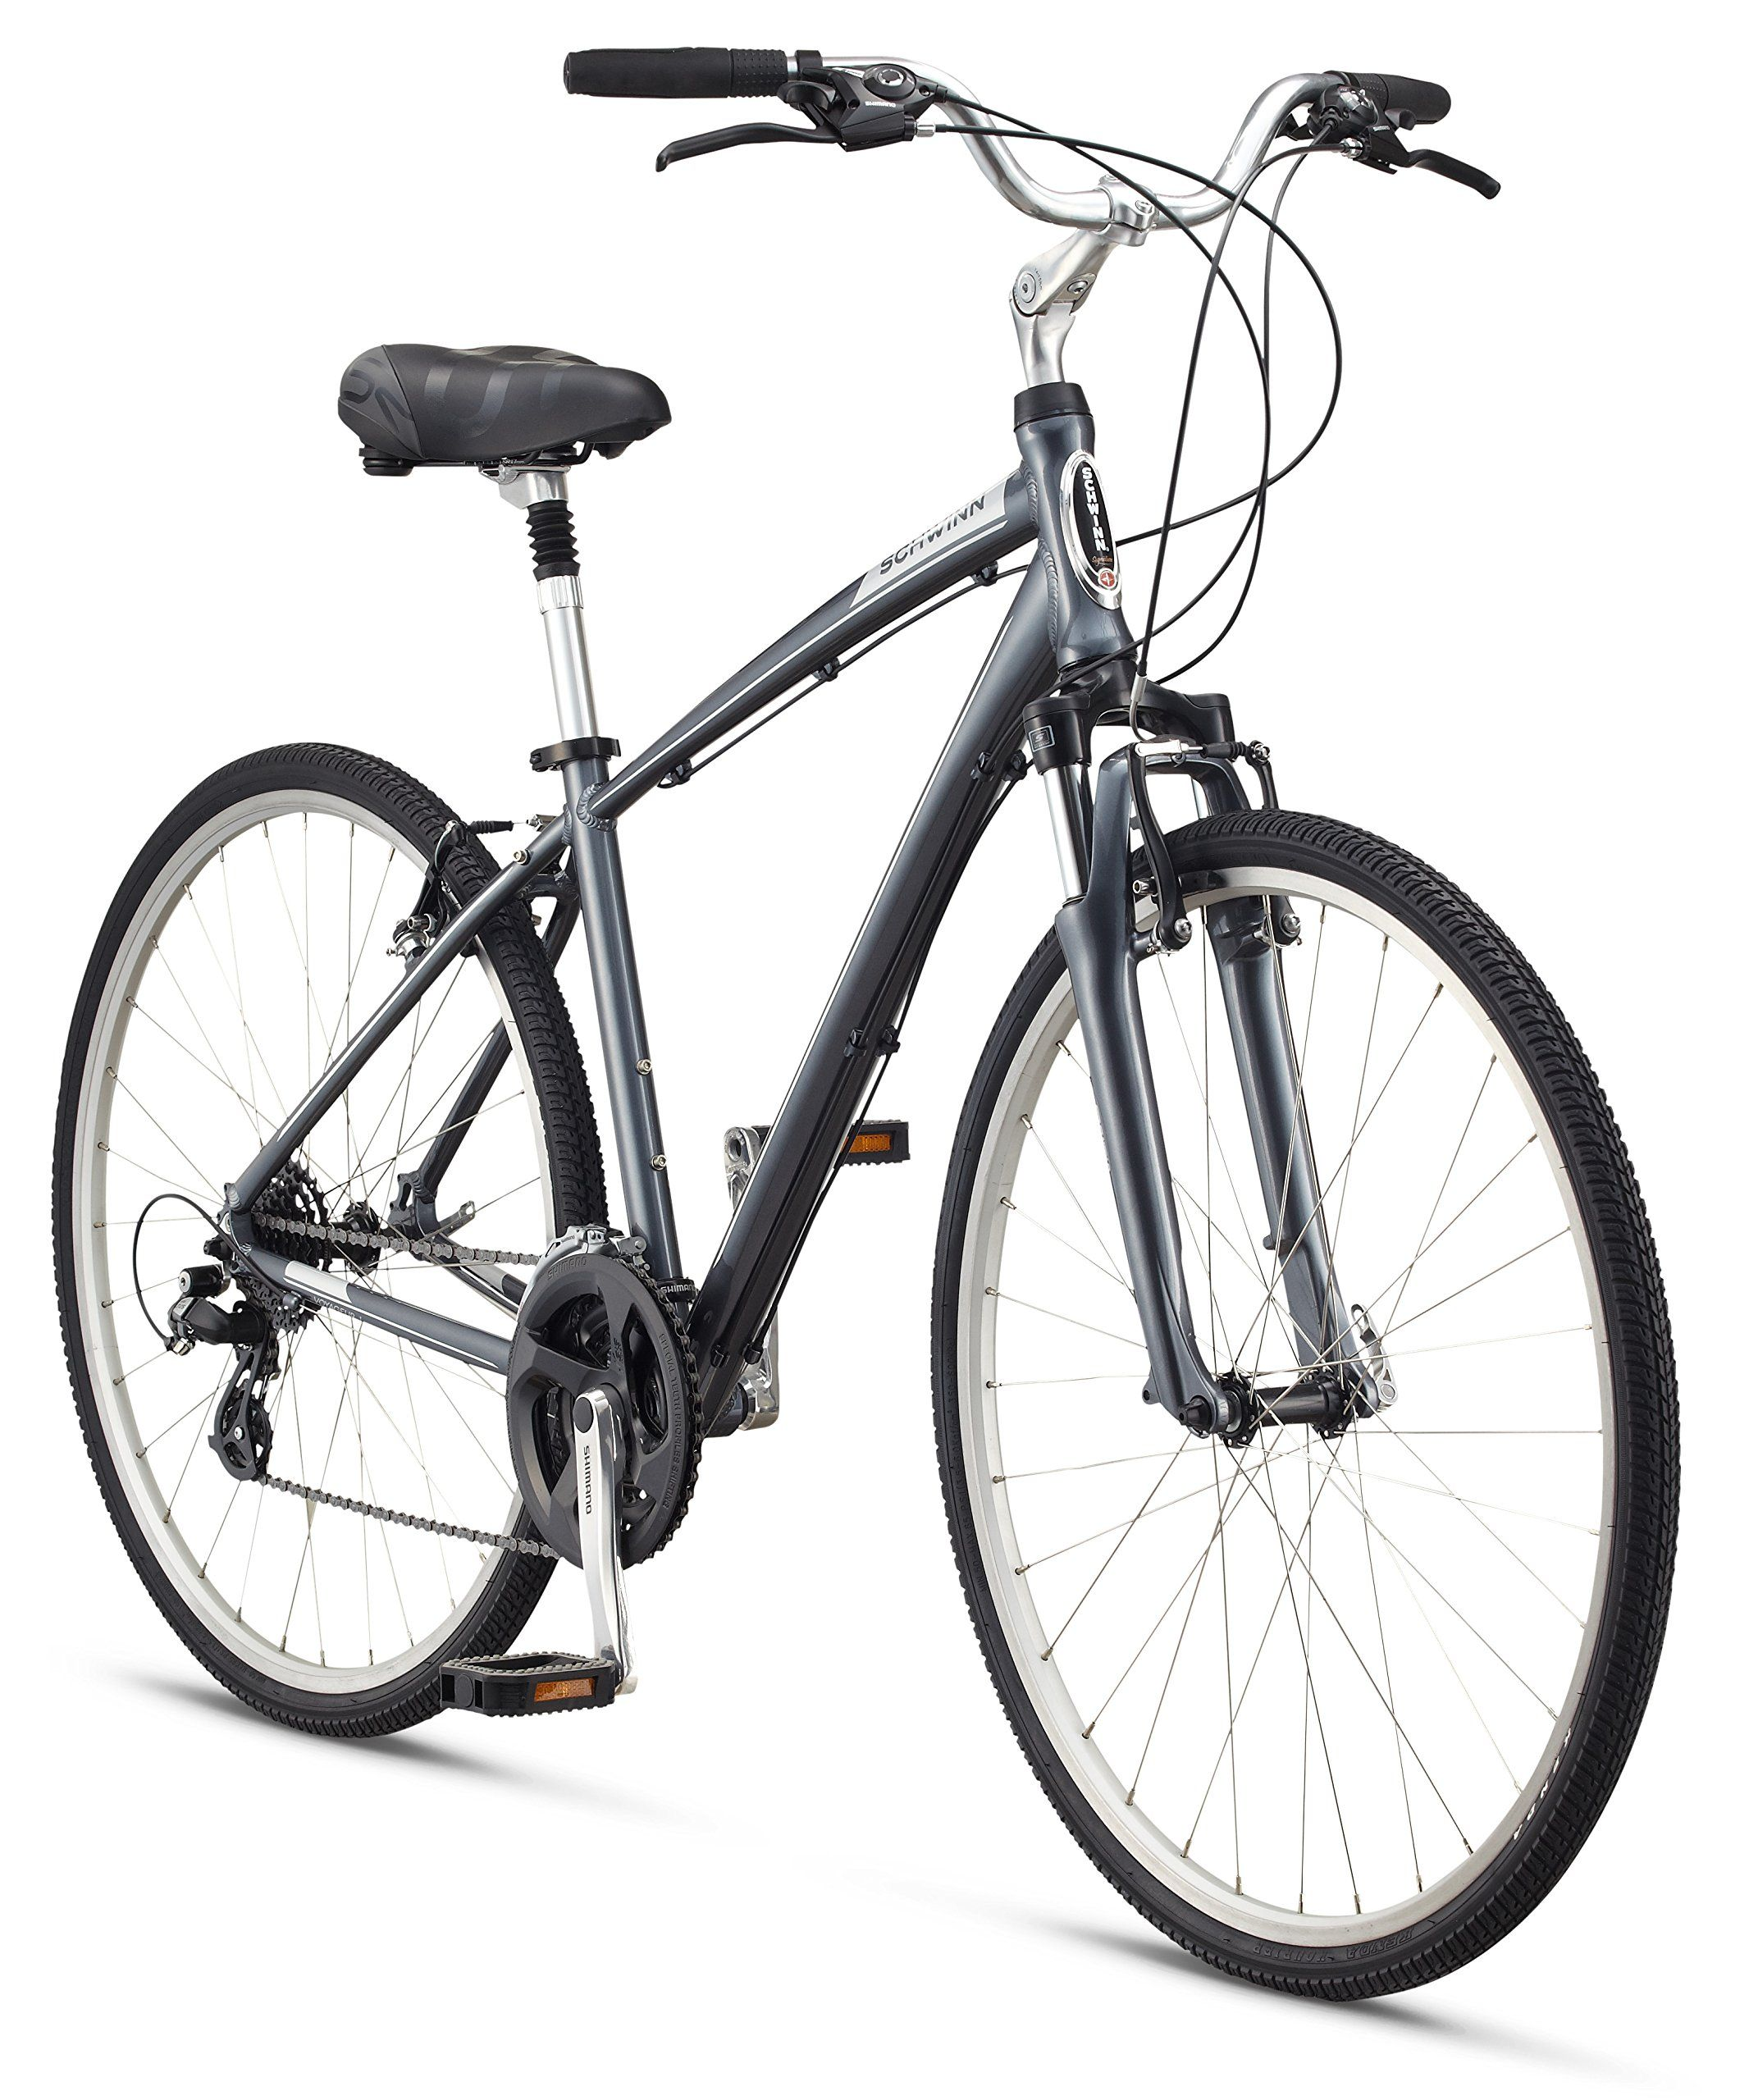 "Schwinn Men's Voyager 1 700C Wheels Hybrid Bicycle, Charcoal, 18""/Medium"